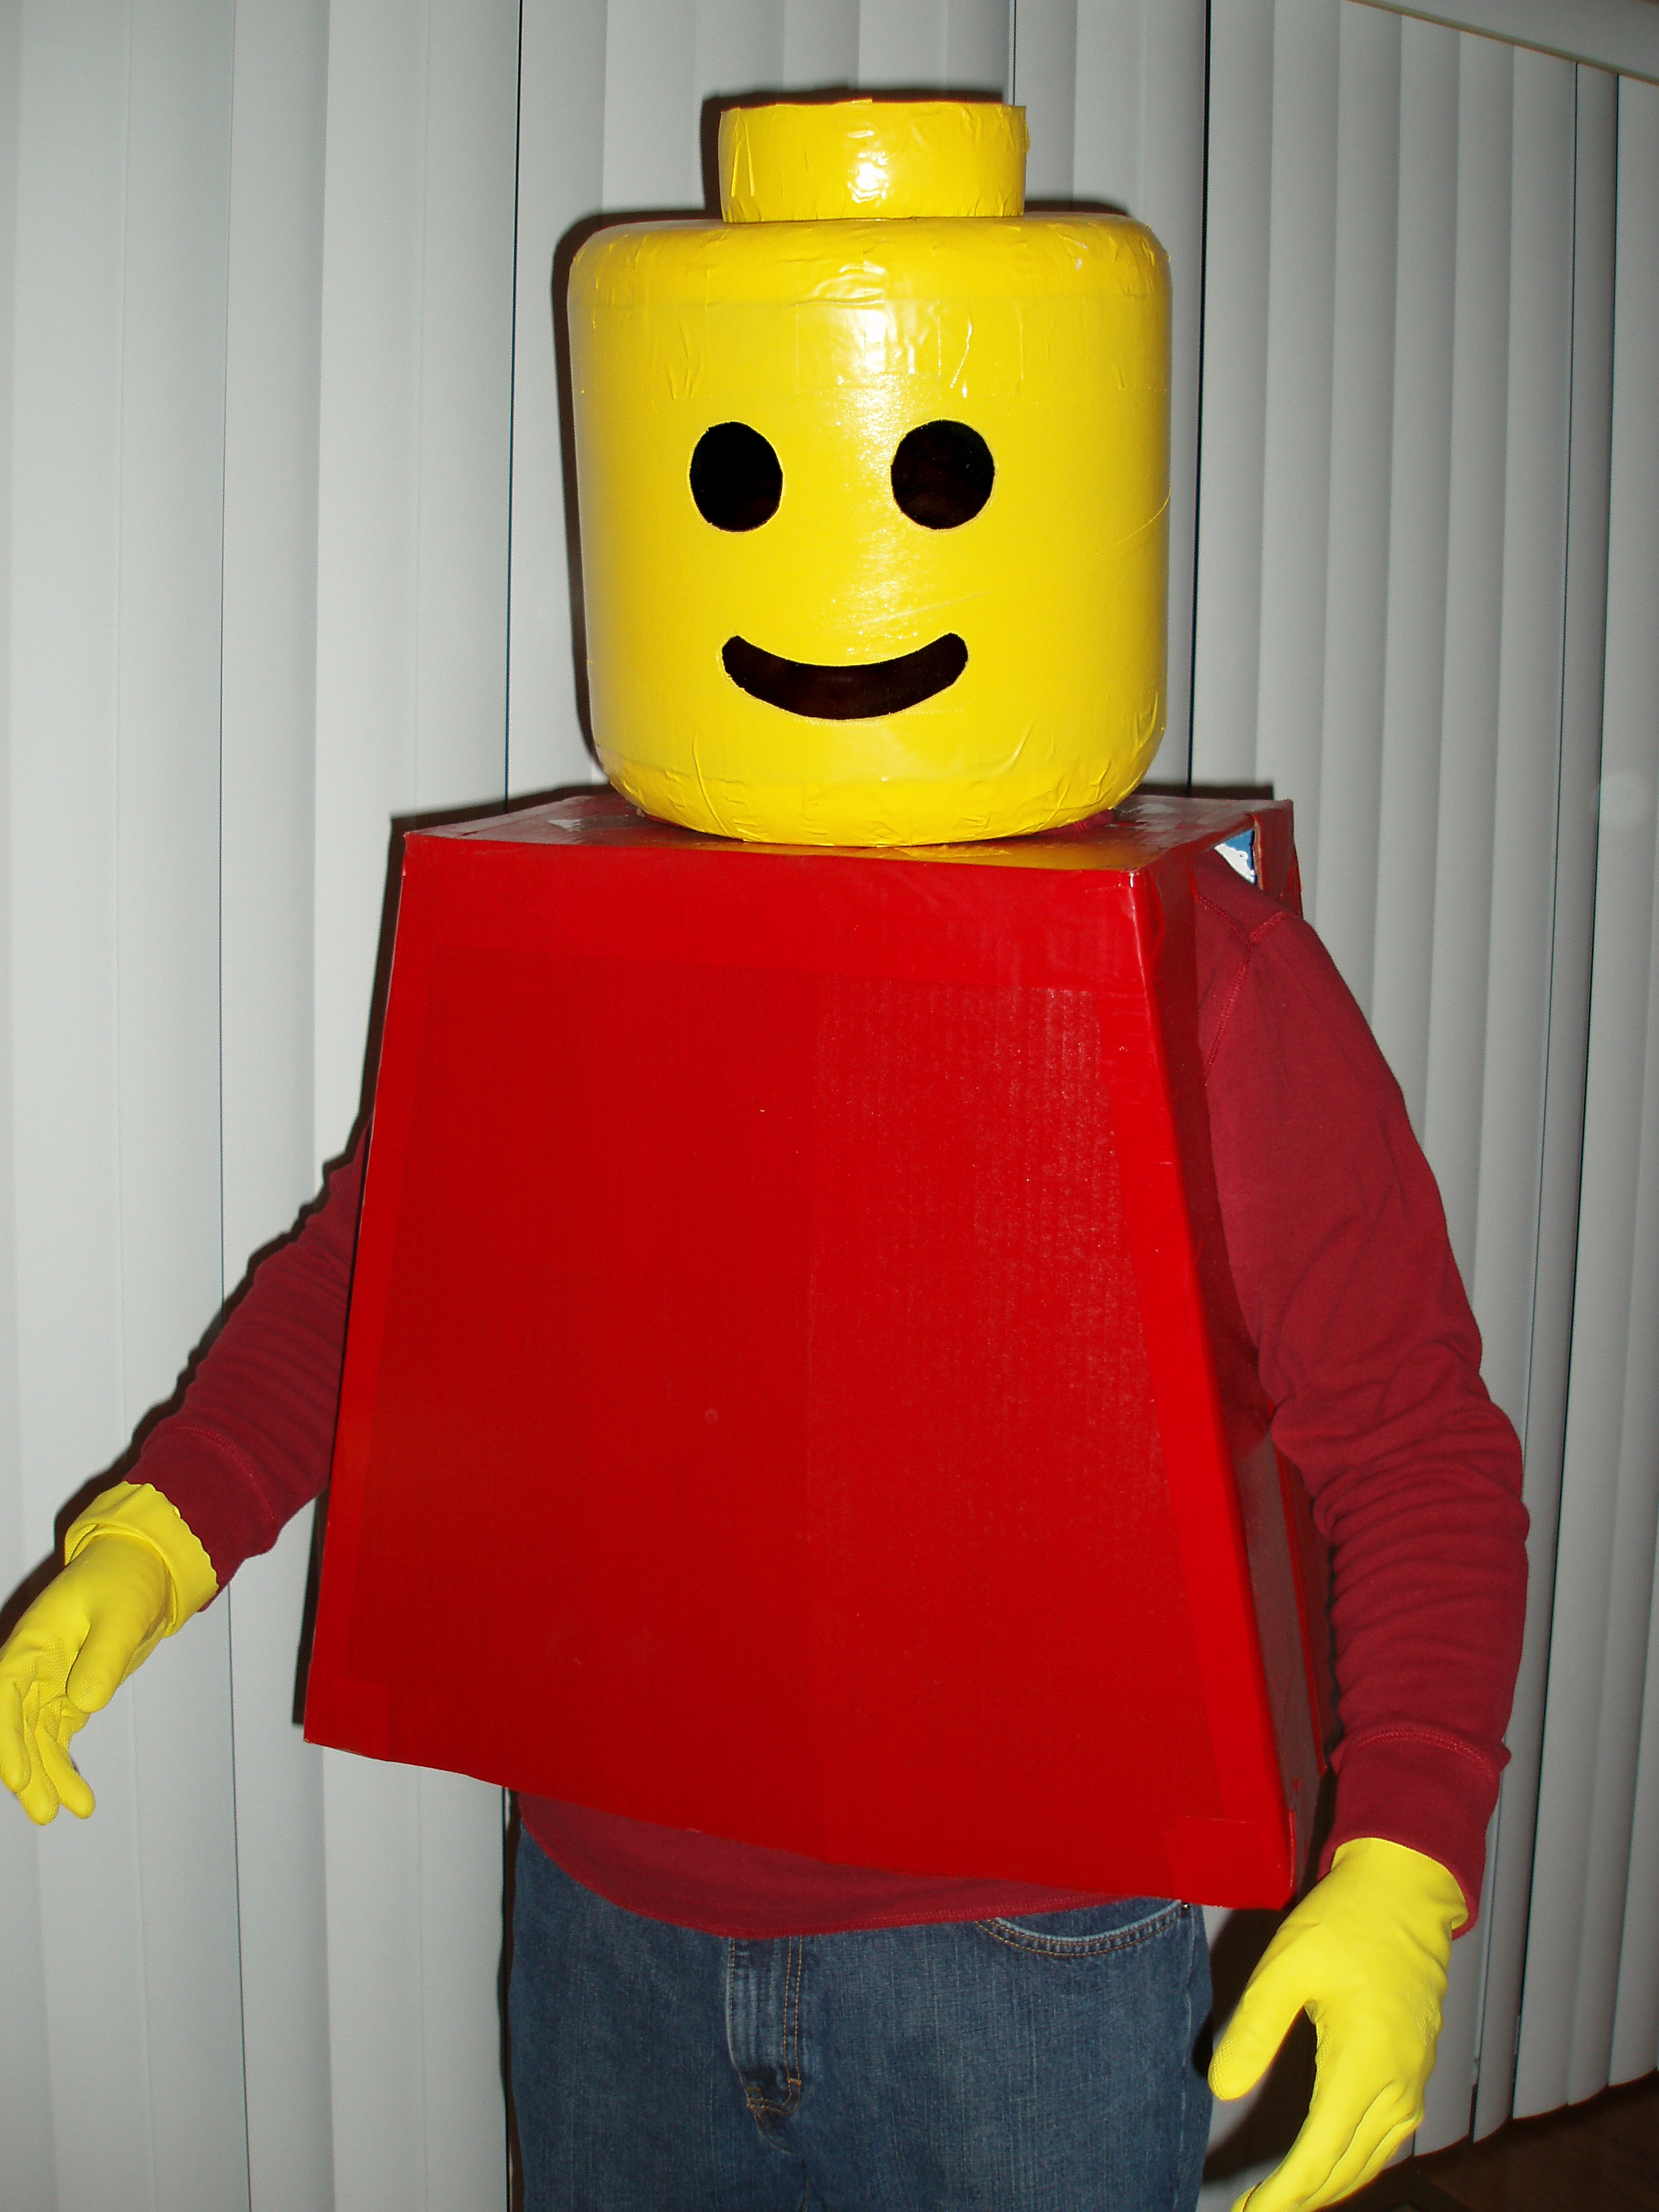 Lego Man Halloween Costume.Lego Man Costume 8 Steps With Pictures